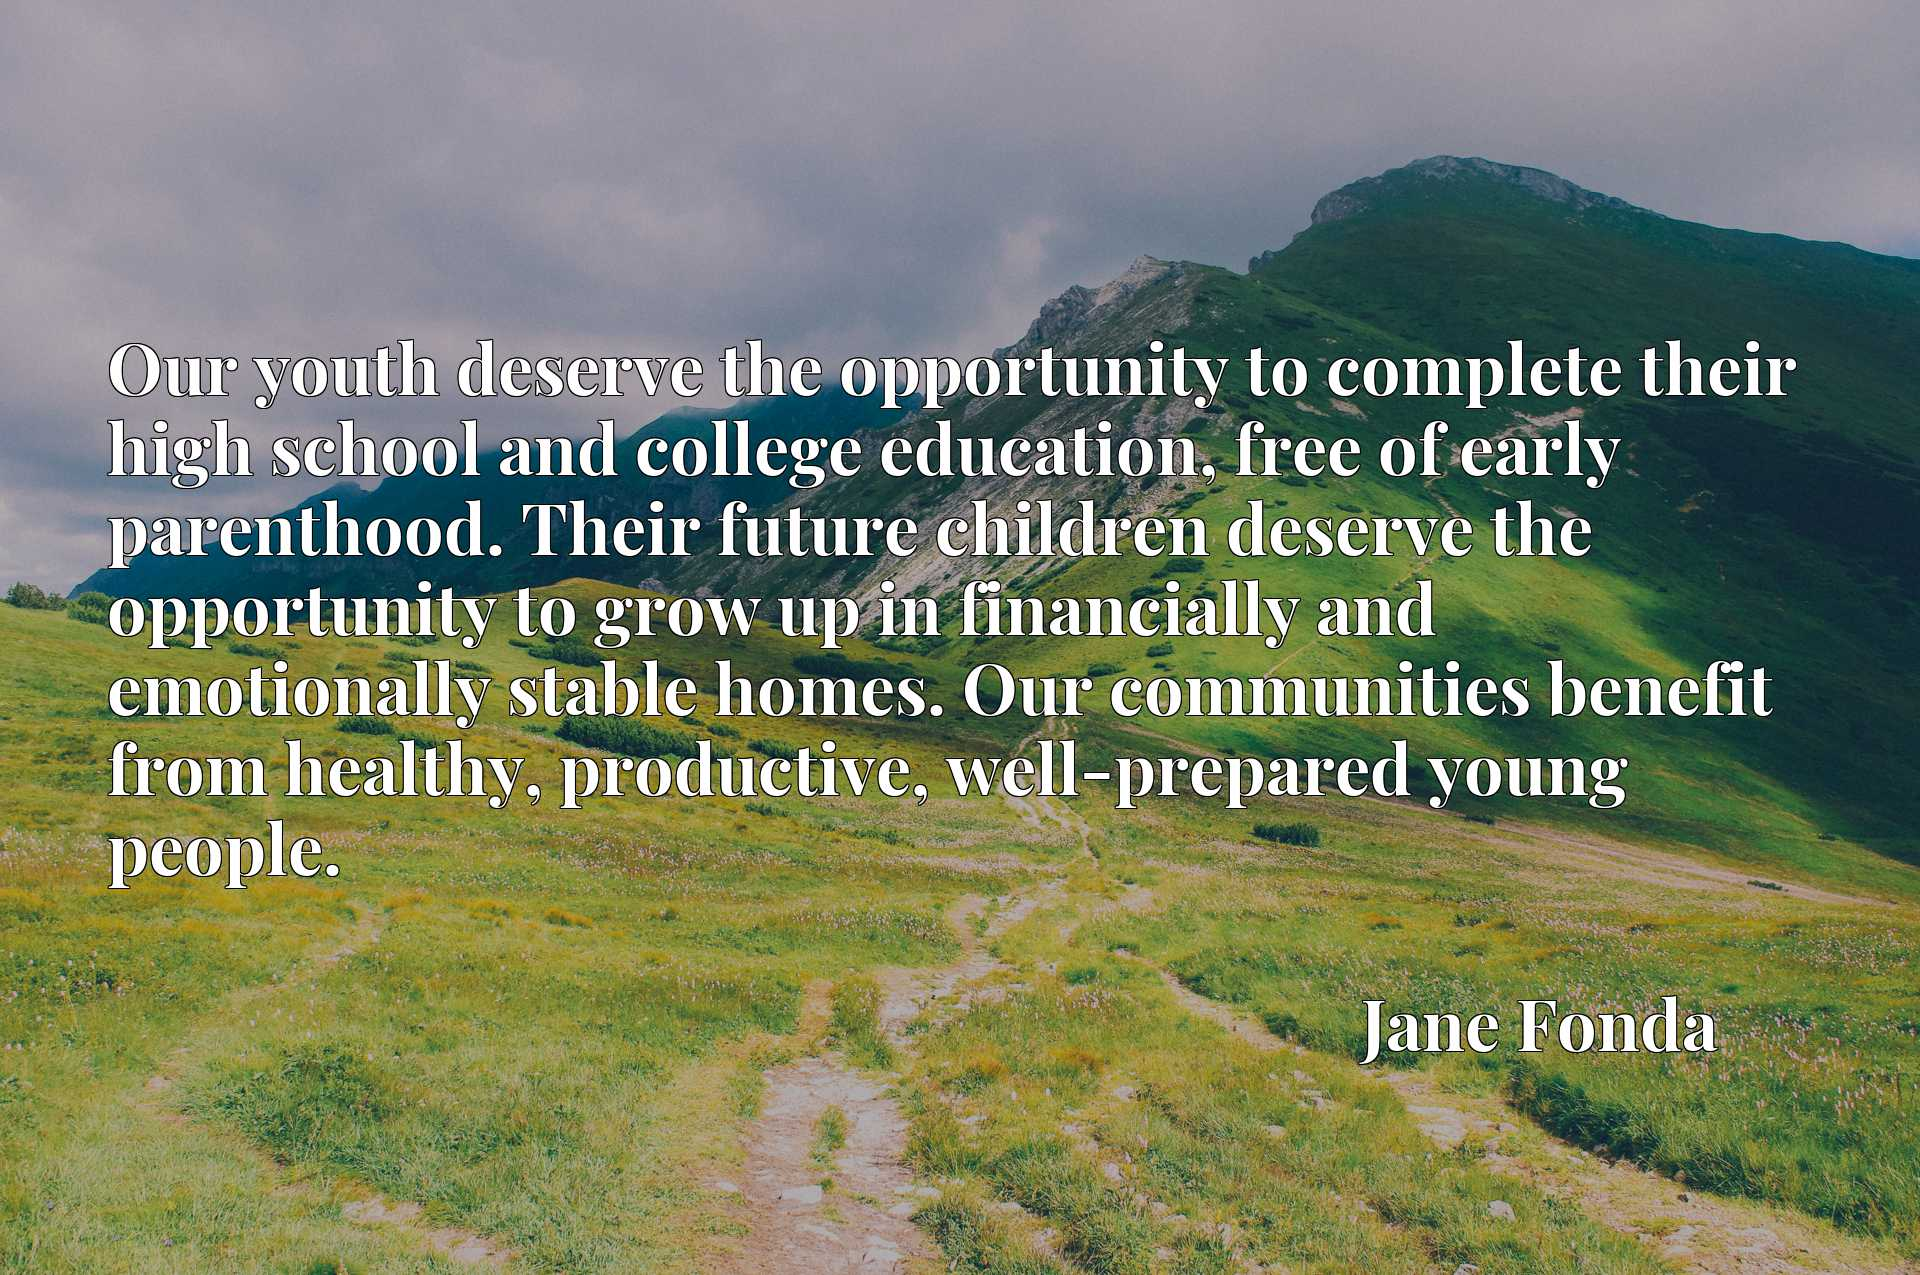 Our youth deserve the opportunity to complete their high school and college education, free of early parenthood. Their future children deserve the opportunity to grow up in financially and emotionally stable homes. Our communities benefit from healthy, productive, well-prepared young people.